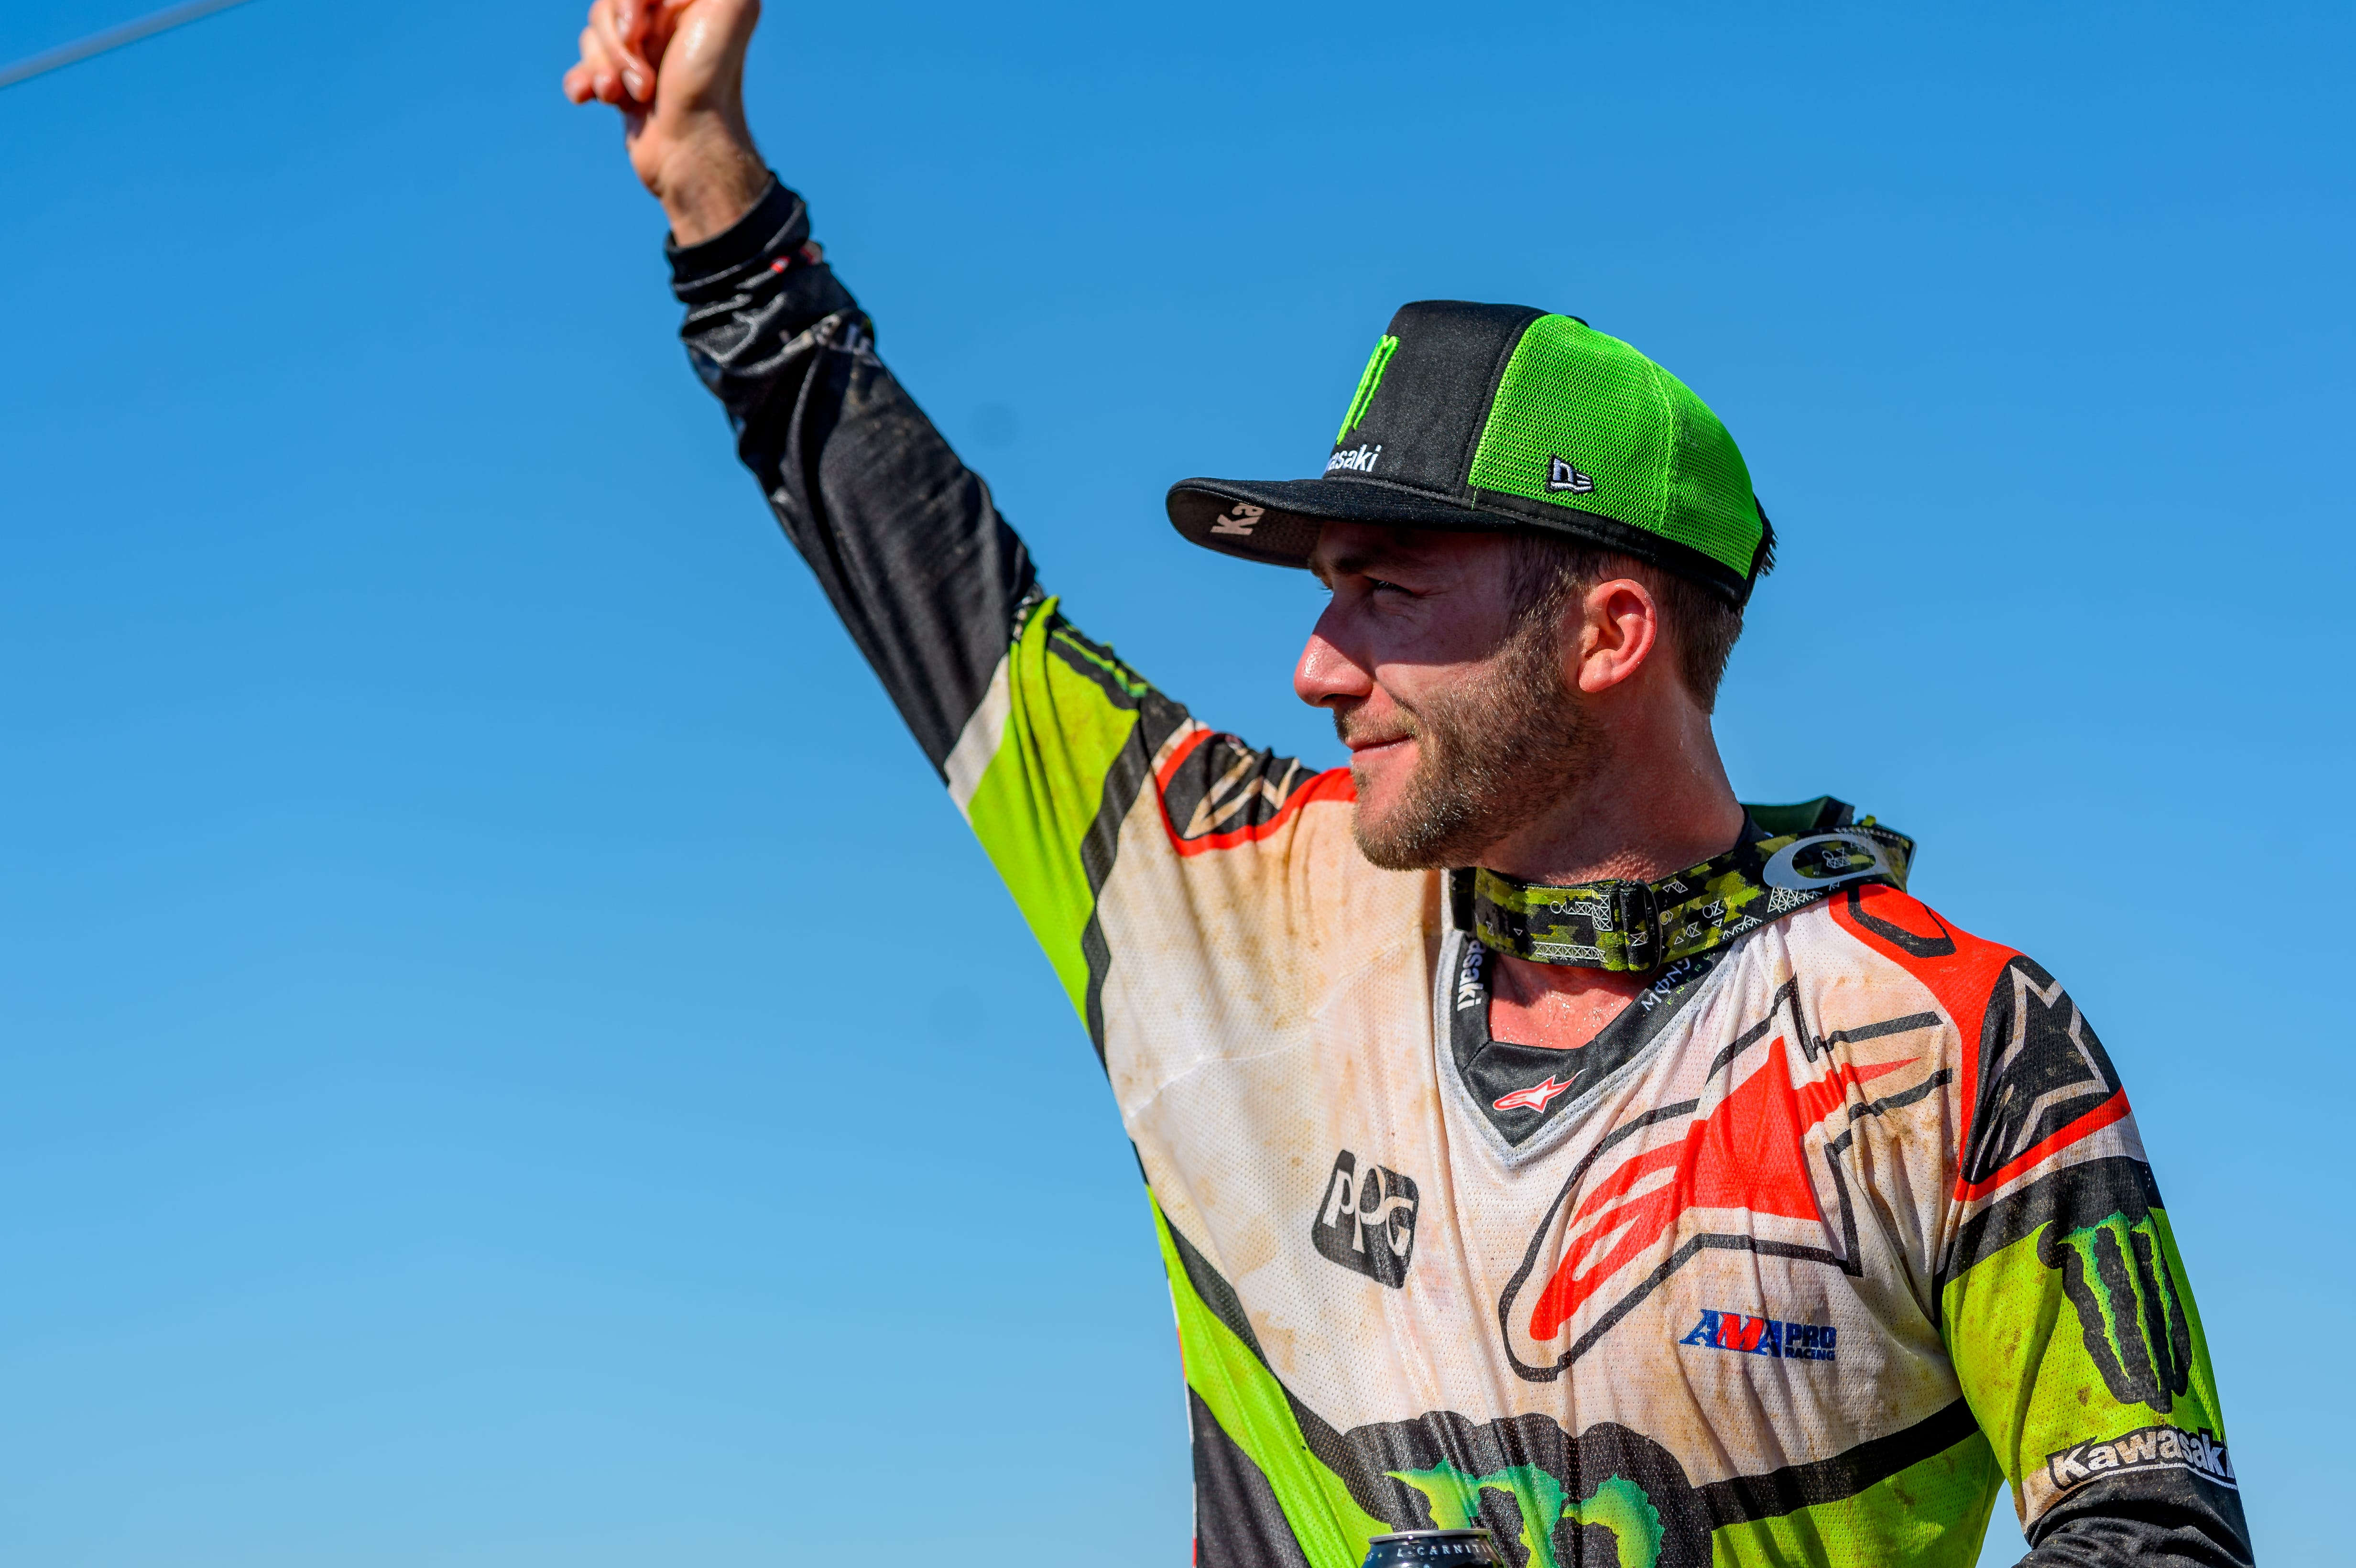 ELI TOMAC AND JOSH GRANT FINISH FIRST AND THIRD AT THE 49TH ANNUAL HANGTOWN CLASSIC